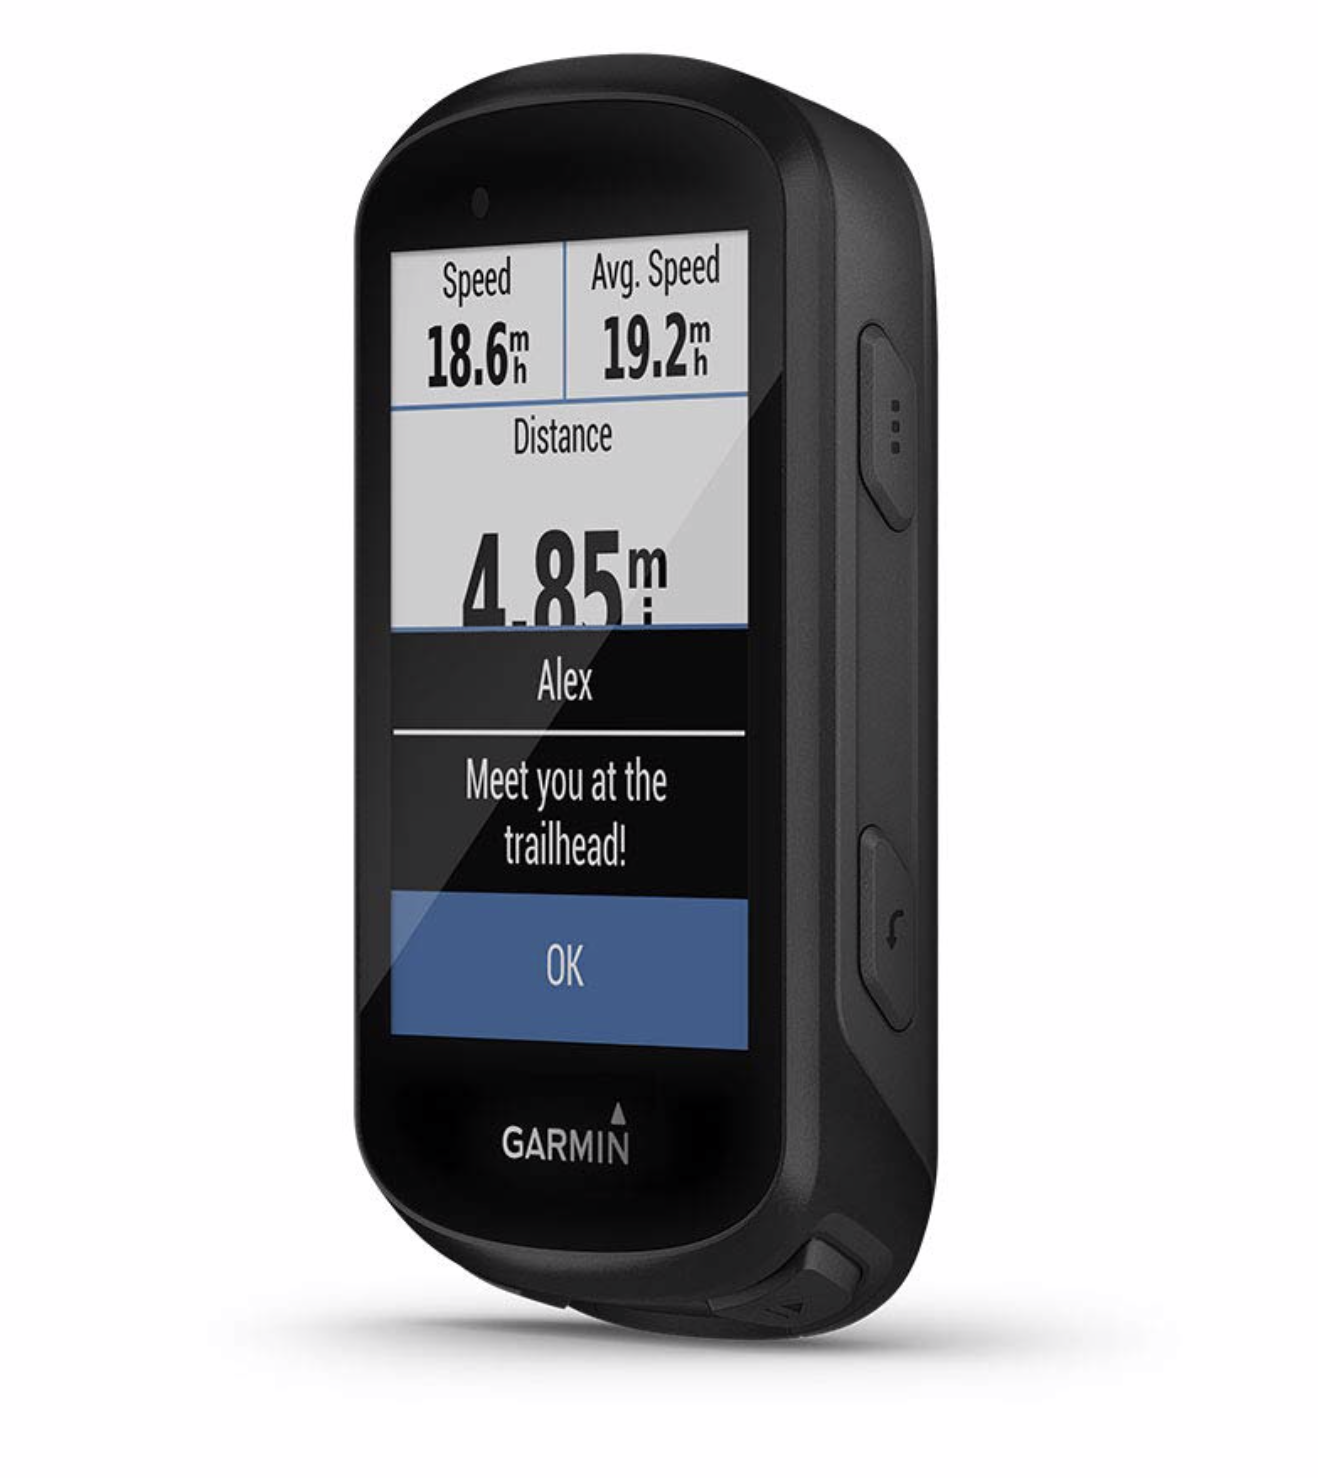 Garmin Edge 530 GPS Cycling Computer  - A great little cycling computer that has pretty much all of the features you need, including wireless upload, 20+ hour battery life, mapping, guiding features, etc.